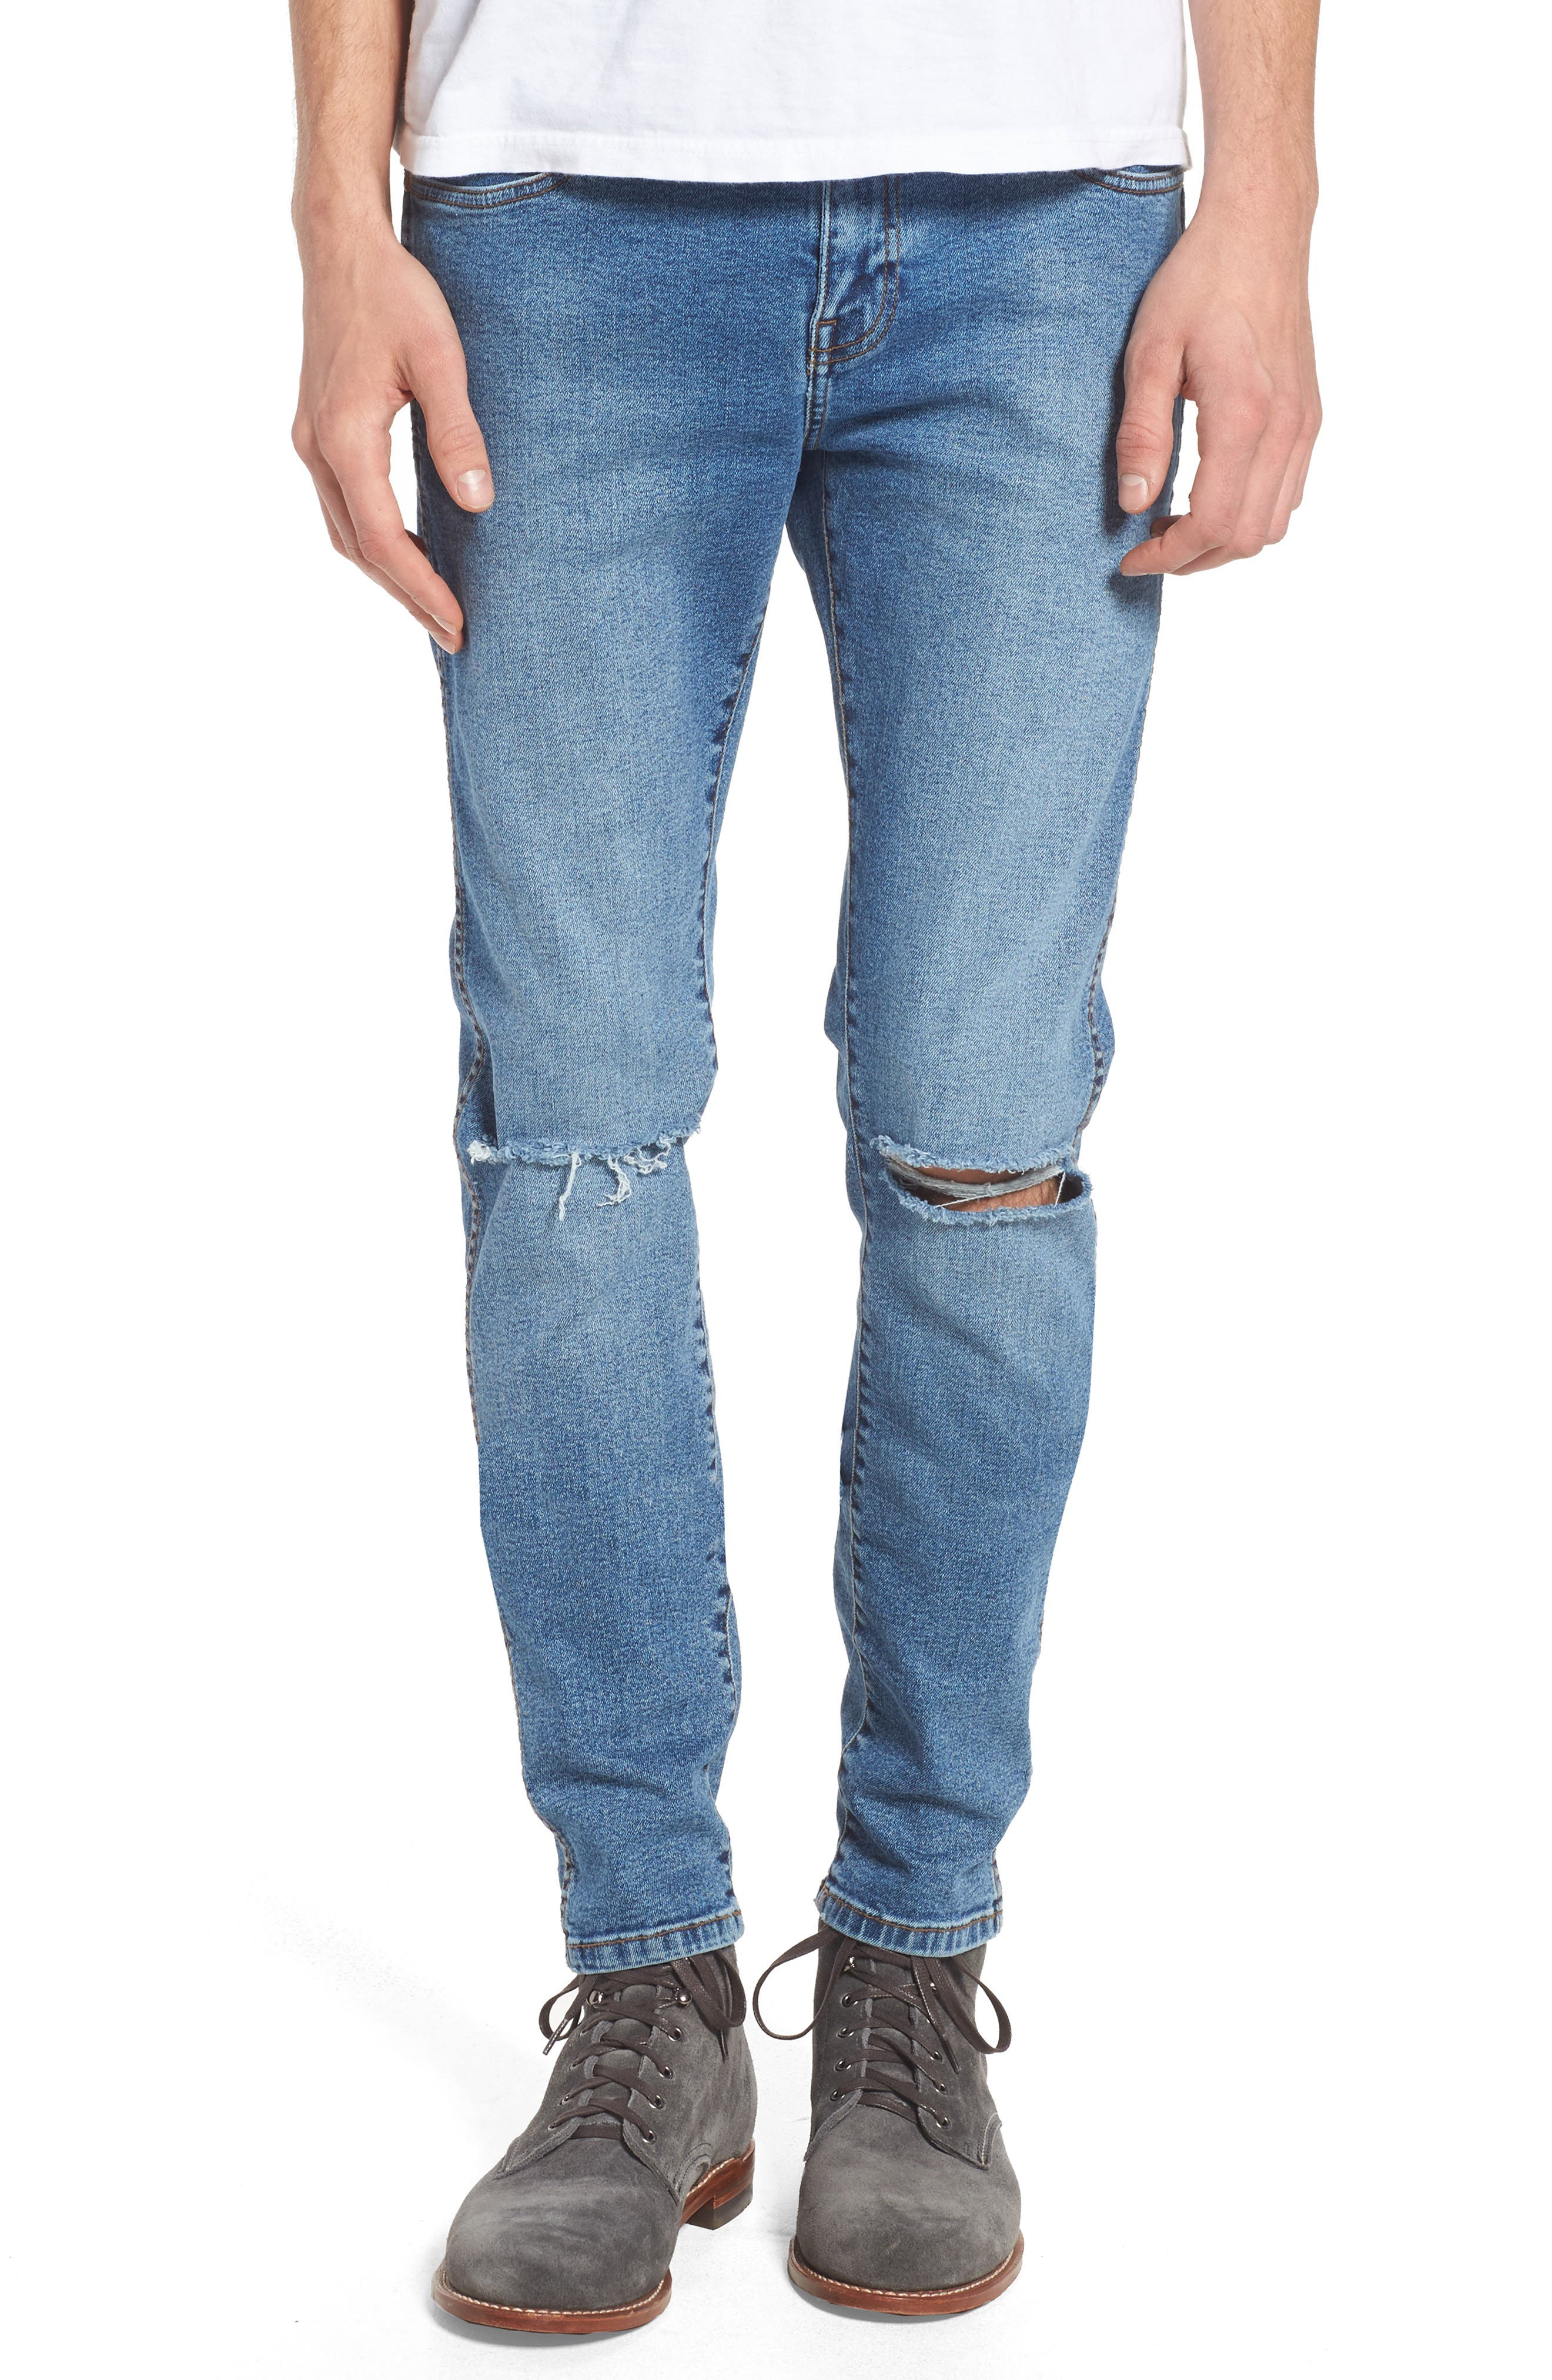 Dr. Denim Supply Co. Snap Skinny Fit Jeans (Light Stone Destroyed)